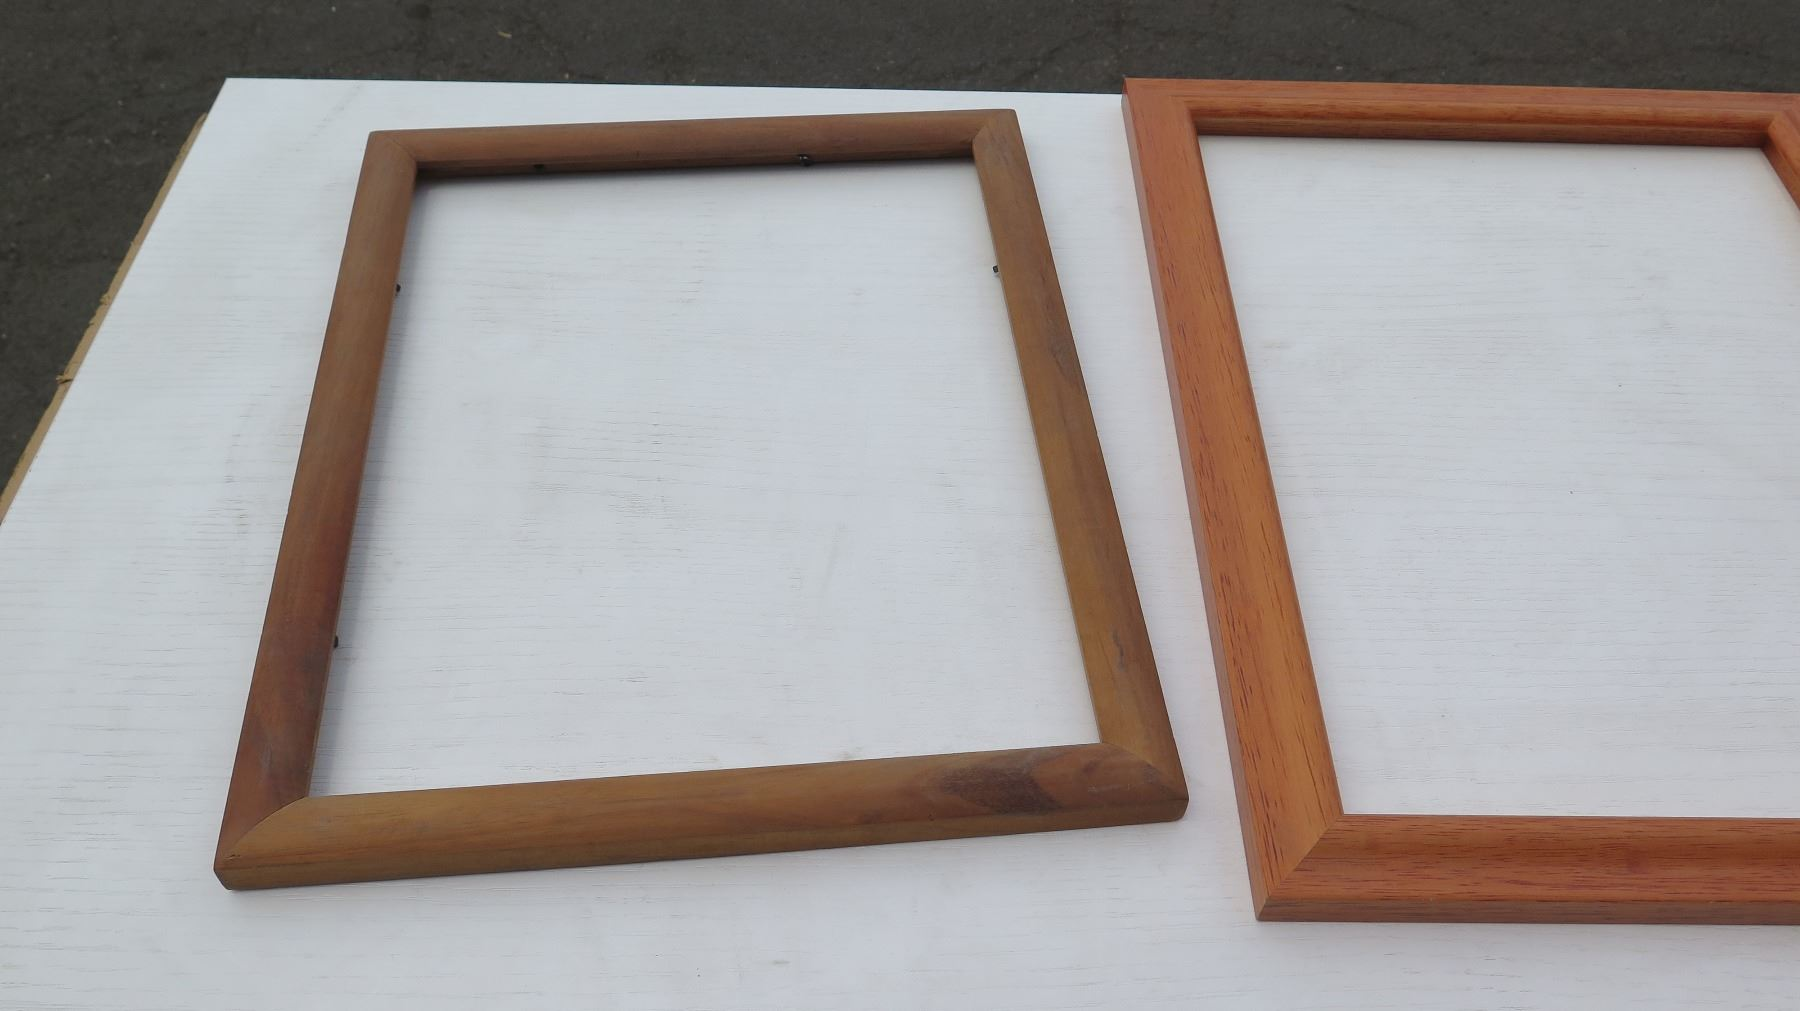 6 Solid & Koa Veneer Picture Frames, Various Sizes (no glass or backing)